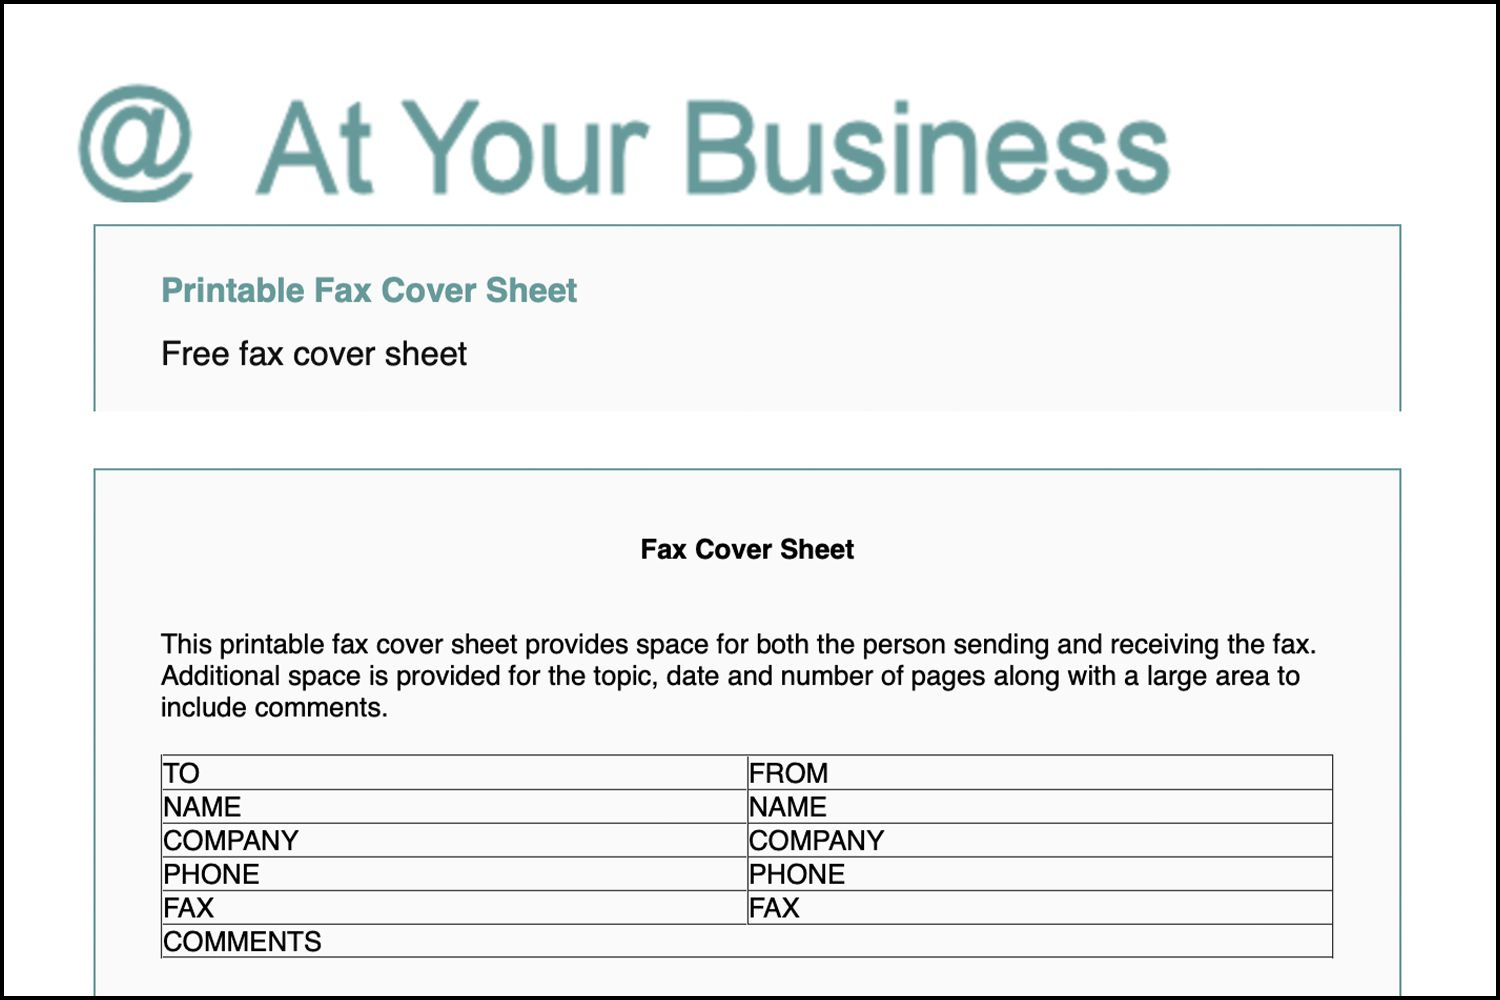 printable fax cover sheet free